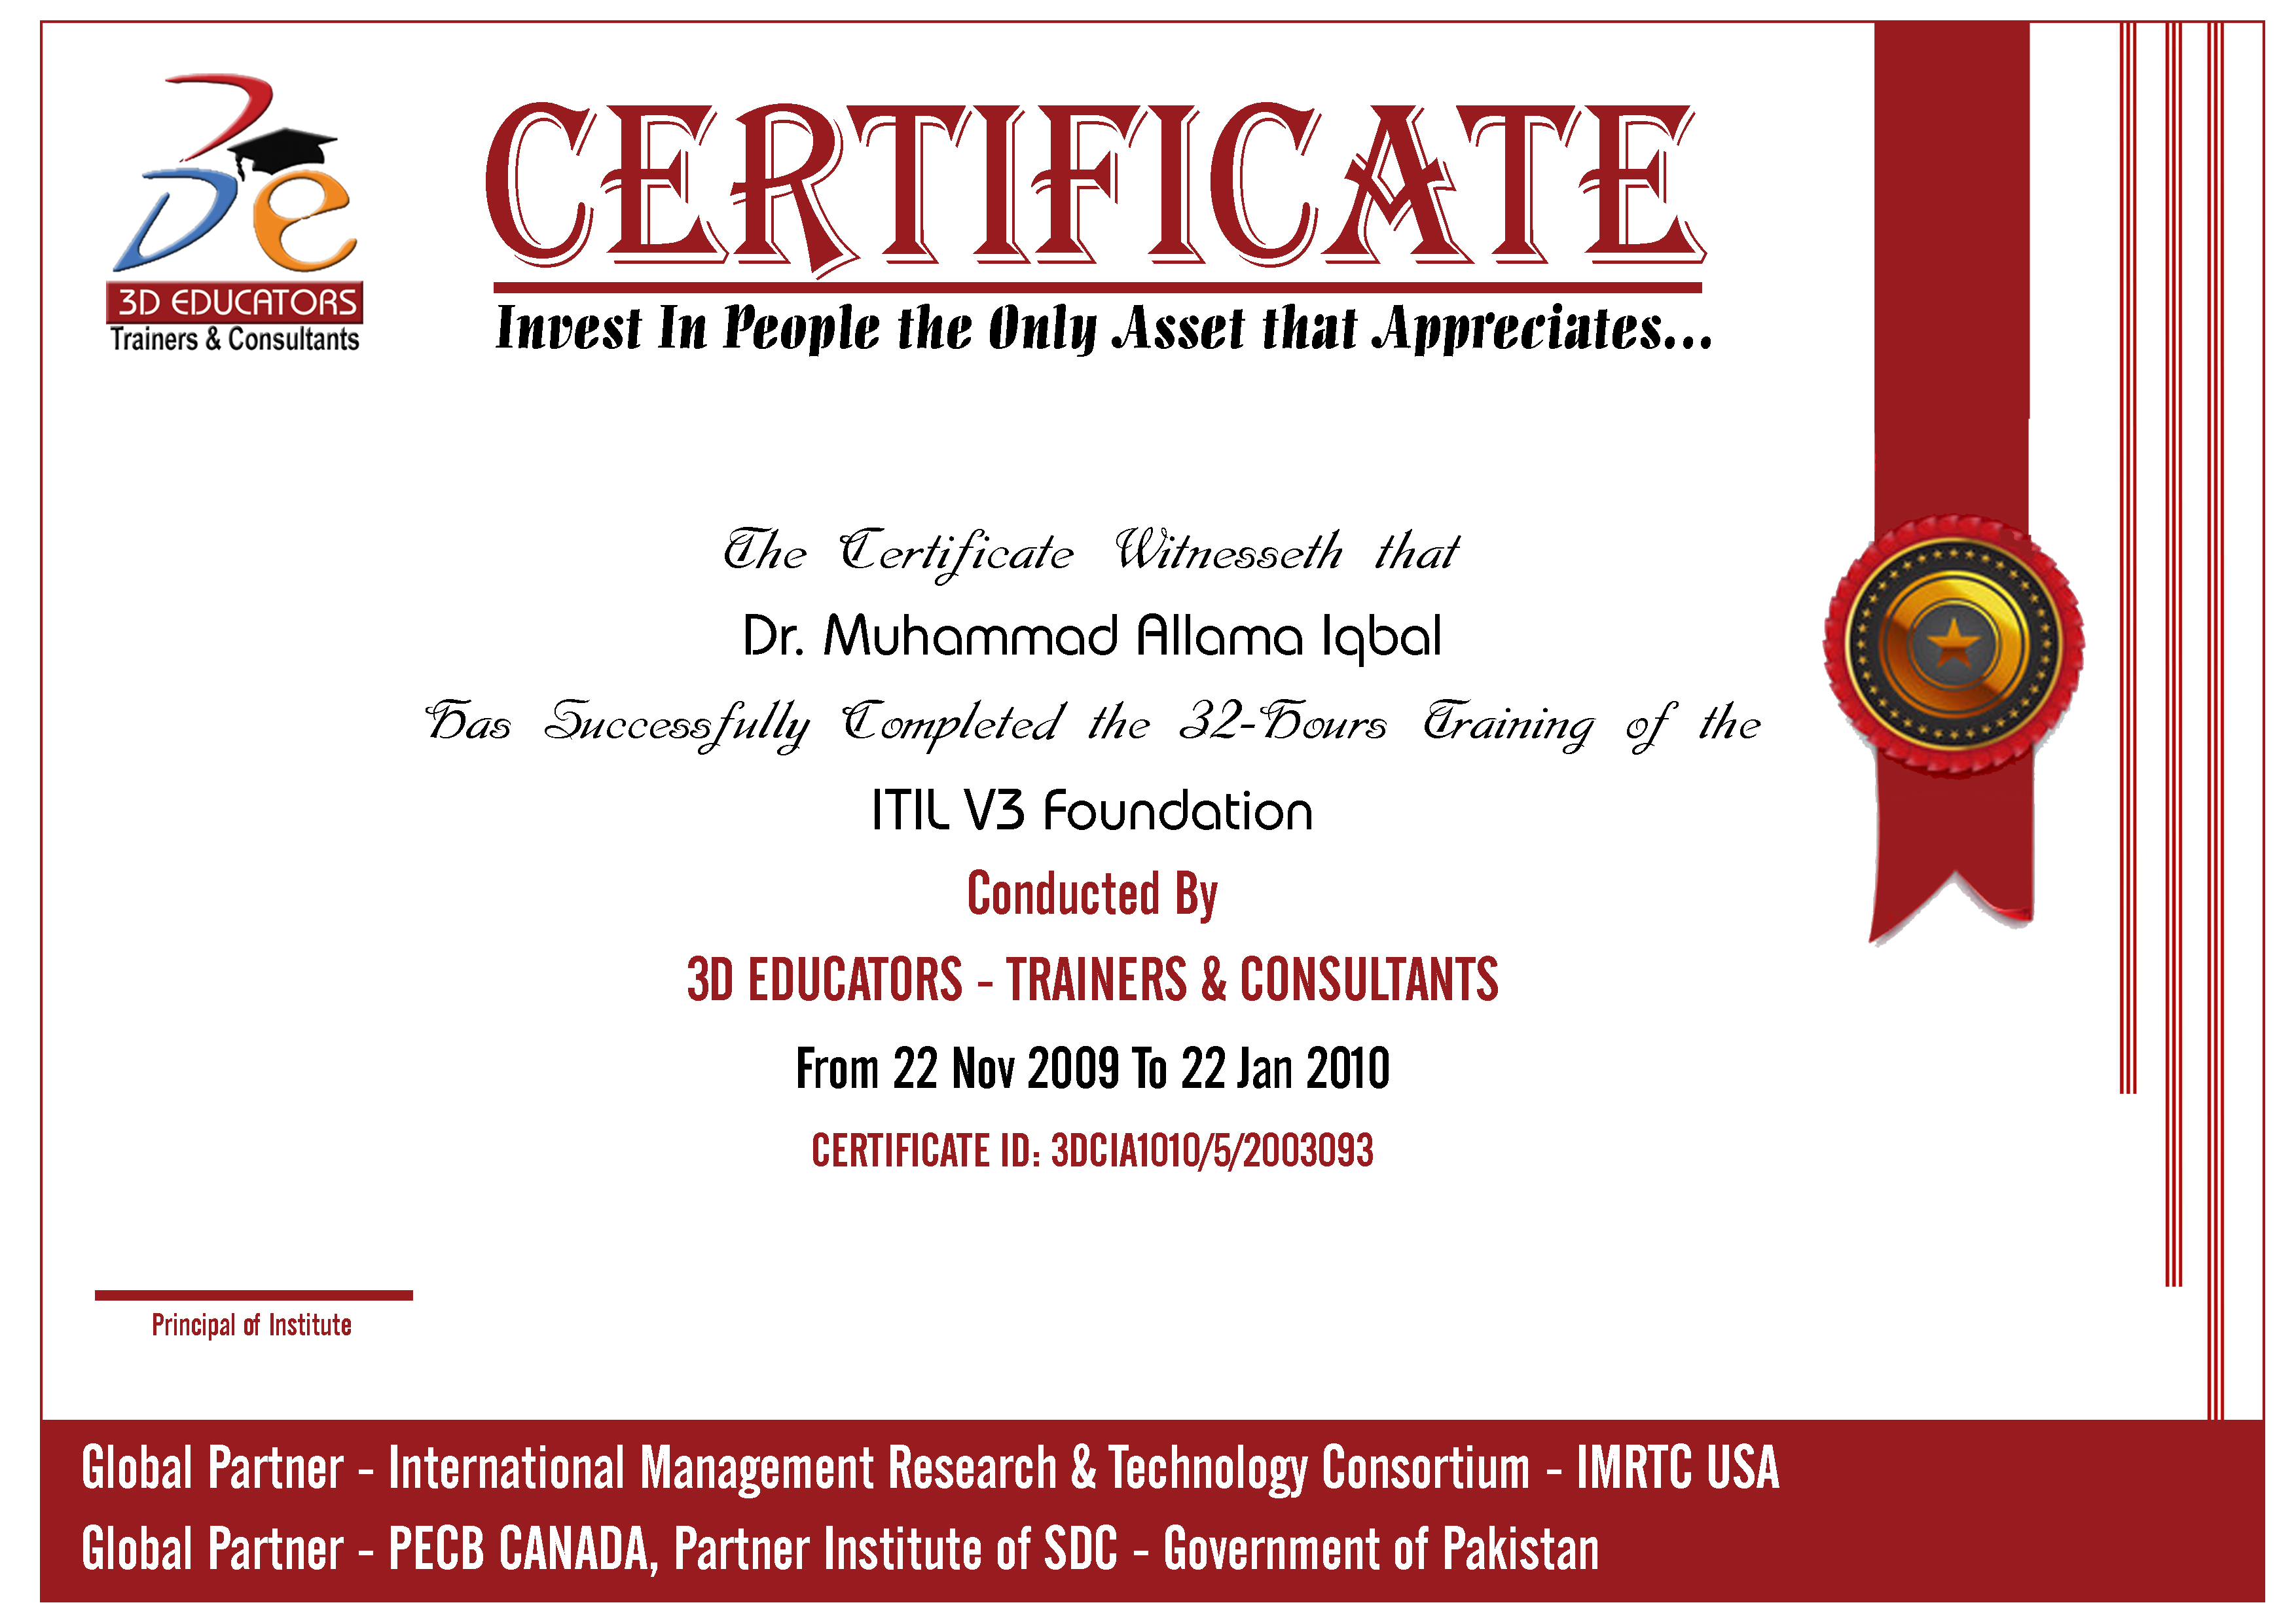 ITIL V3 Foundation Training Sample Certificate